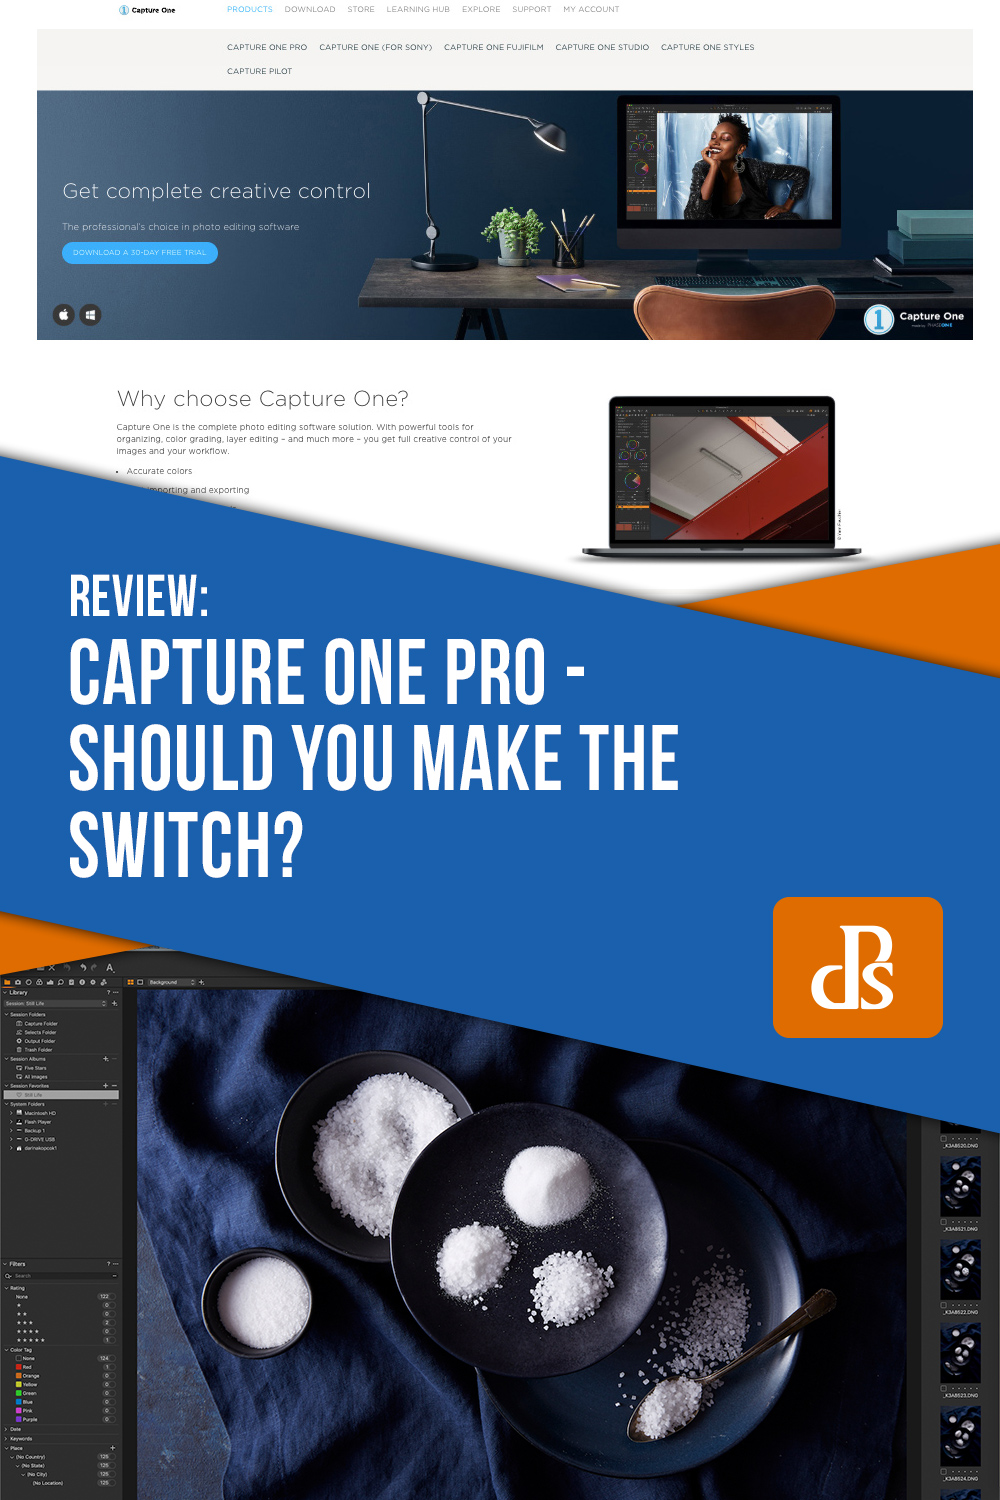 capture one pro - should you make the switch?